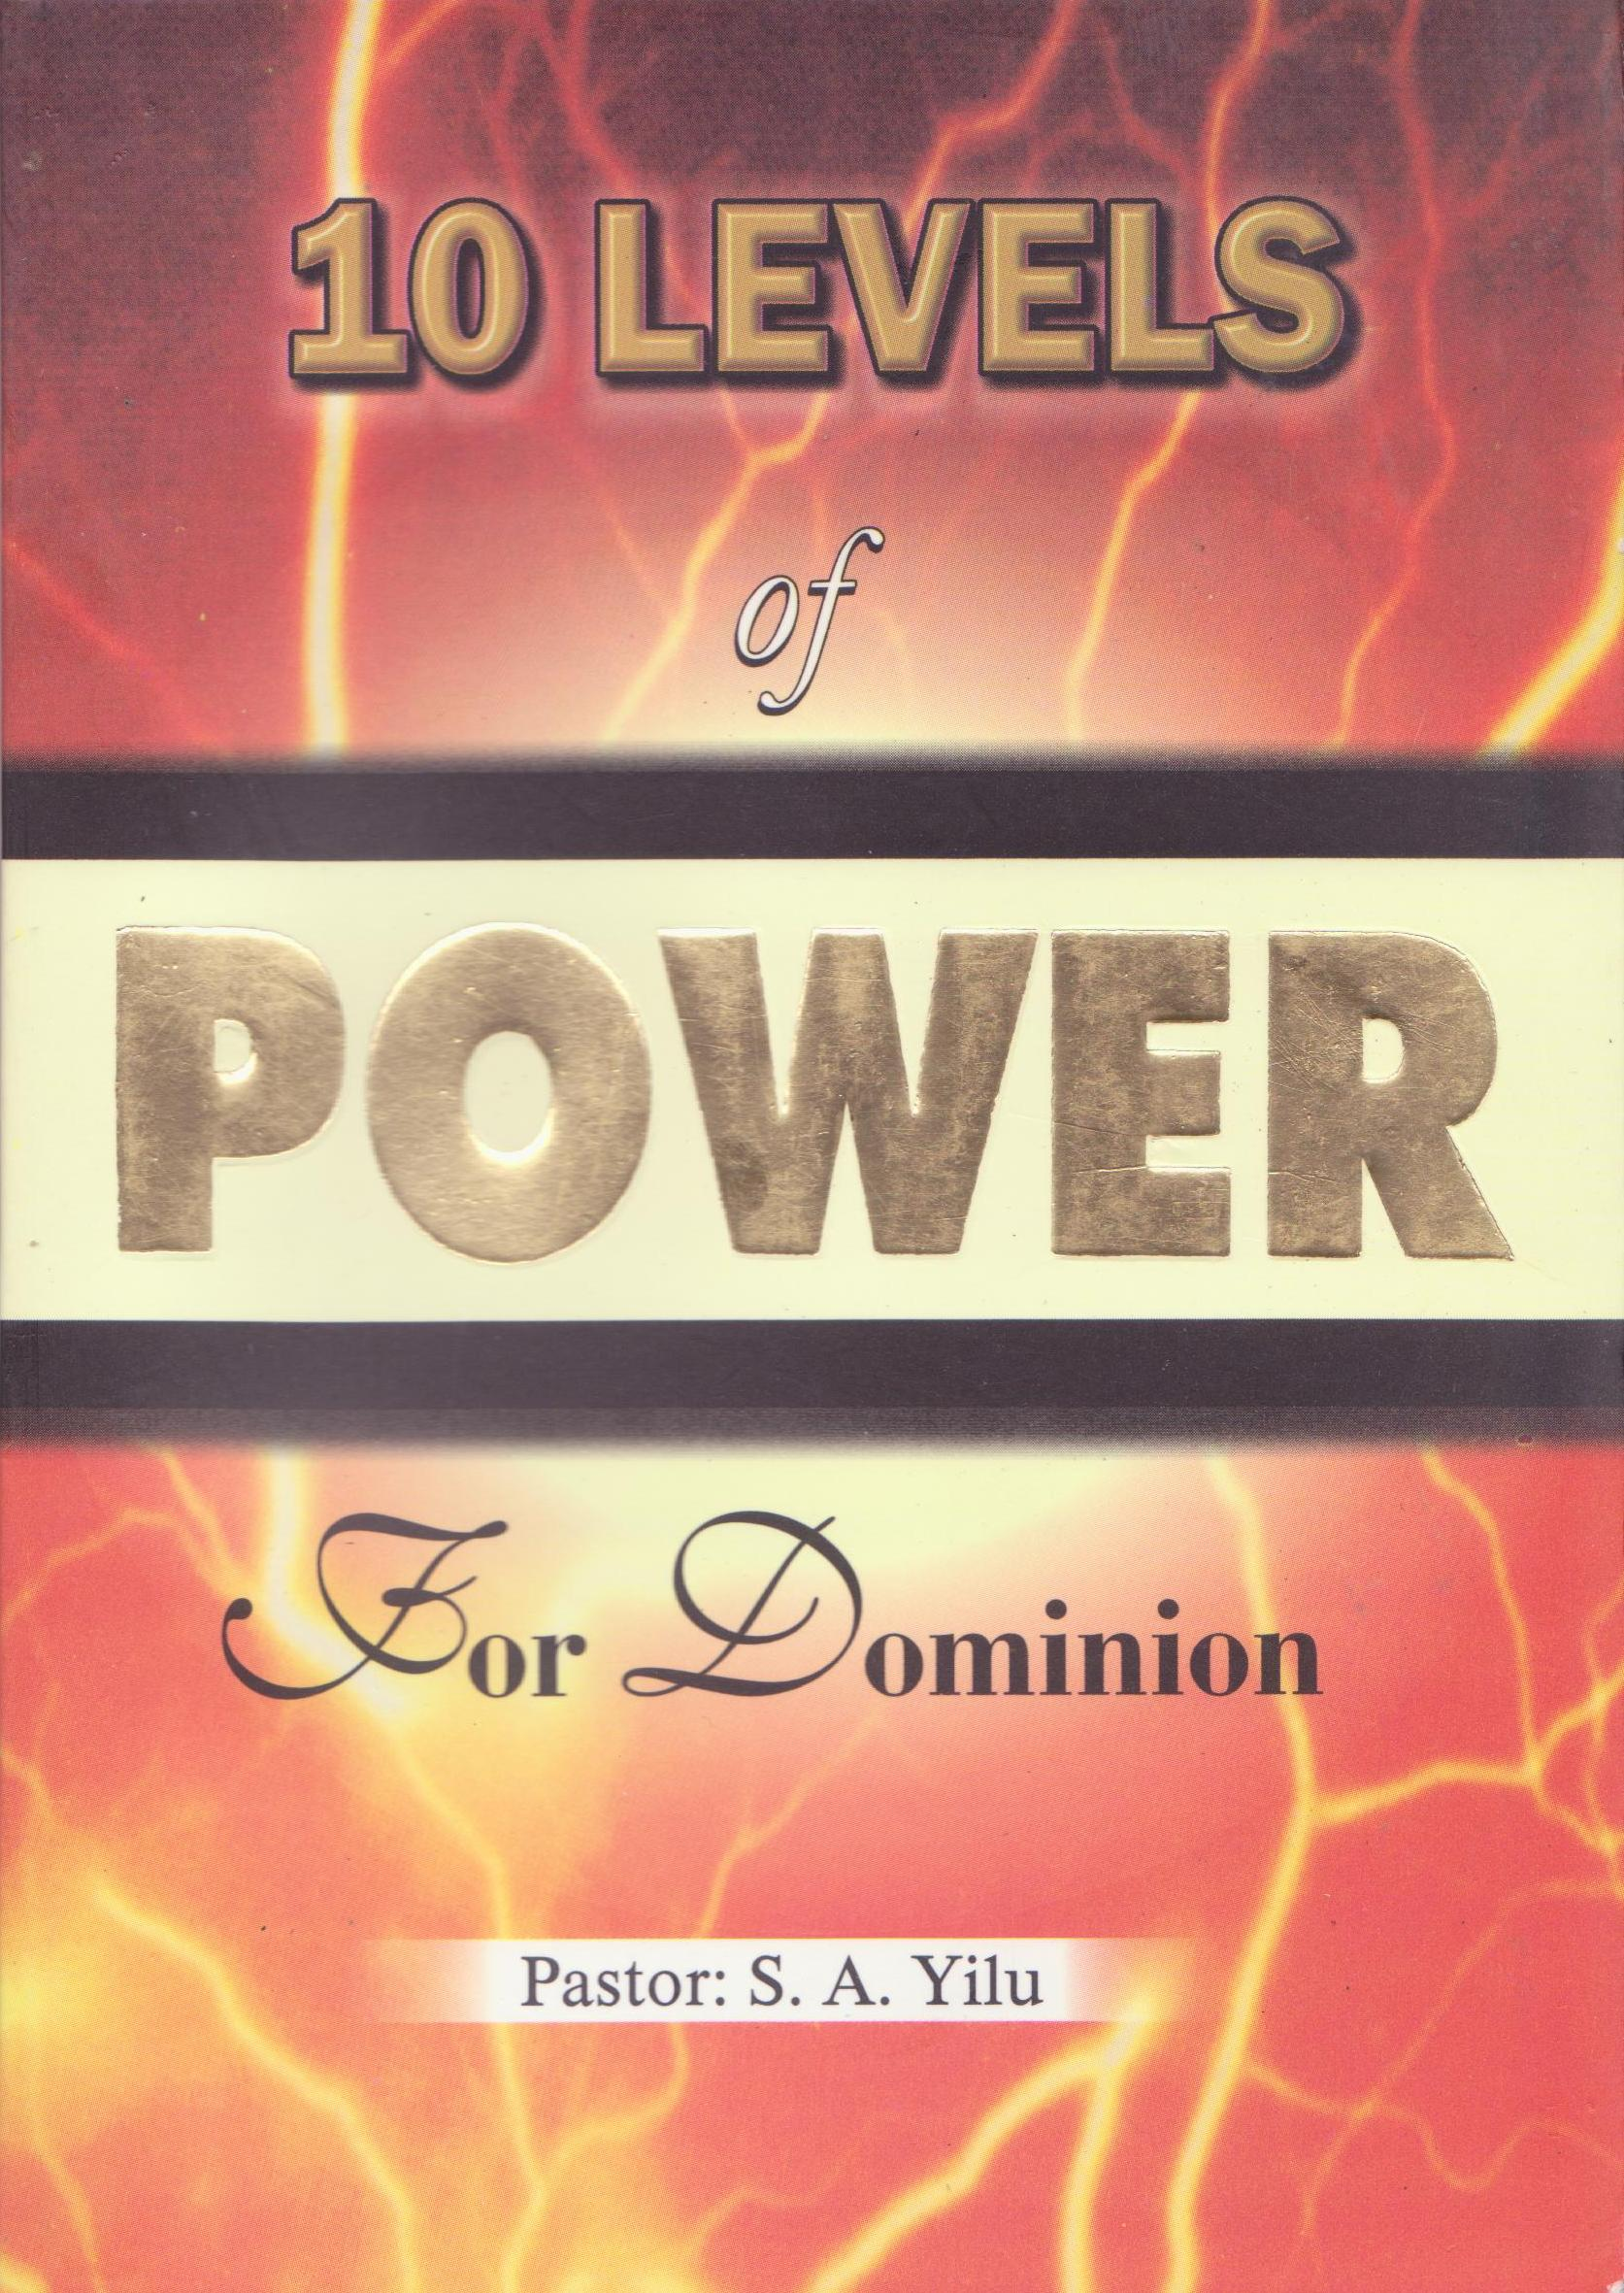 10 Levels Of Power for Dominion [Paperback] [Jan 01, 2005] Pastor S. A. Yilu